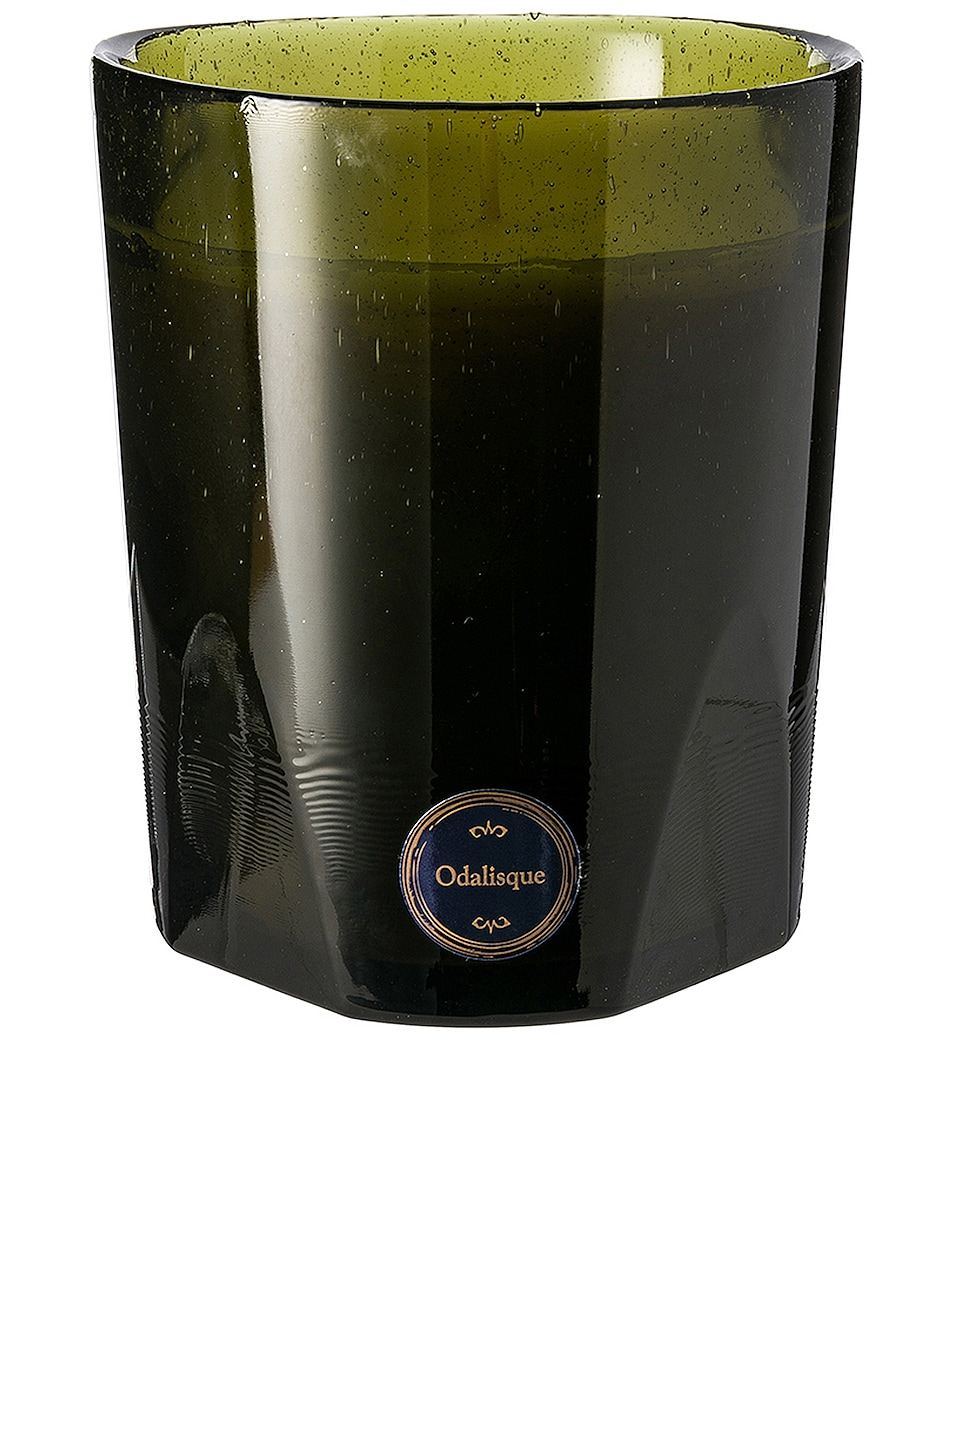 Image 3 of Cire Trudon Odalisque Classic Scented Candle in Odalisque